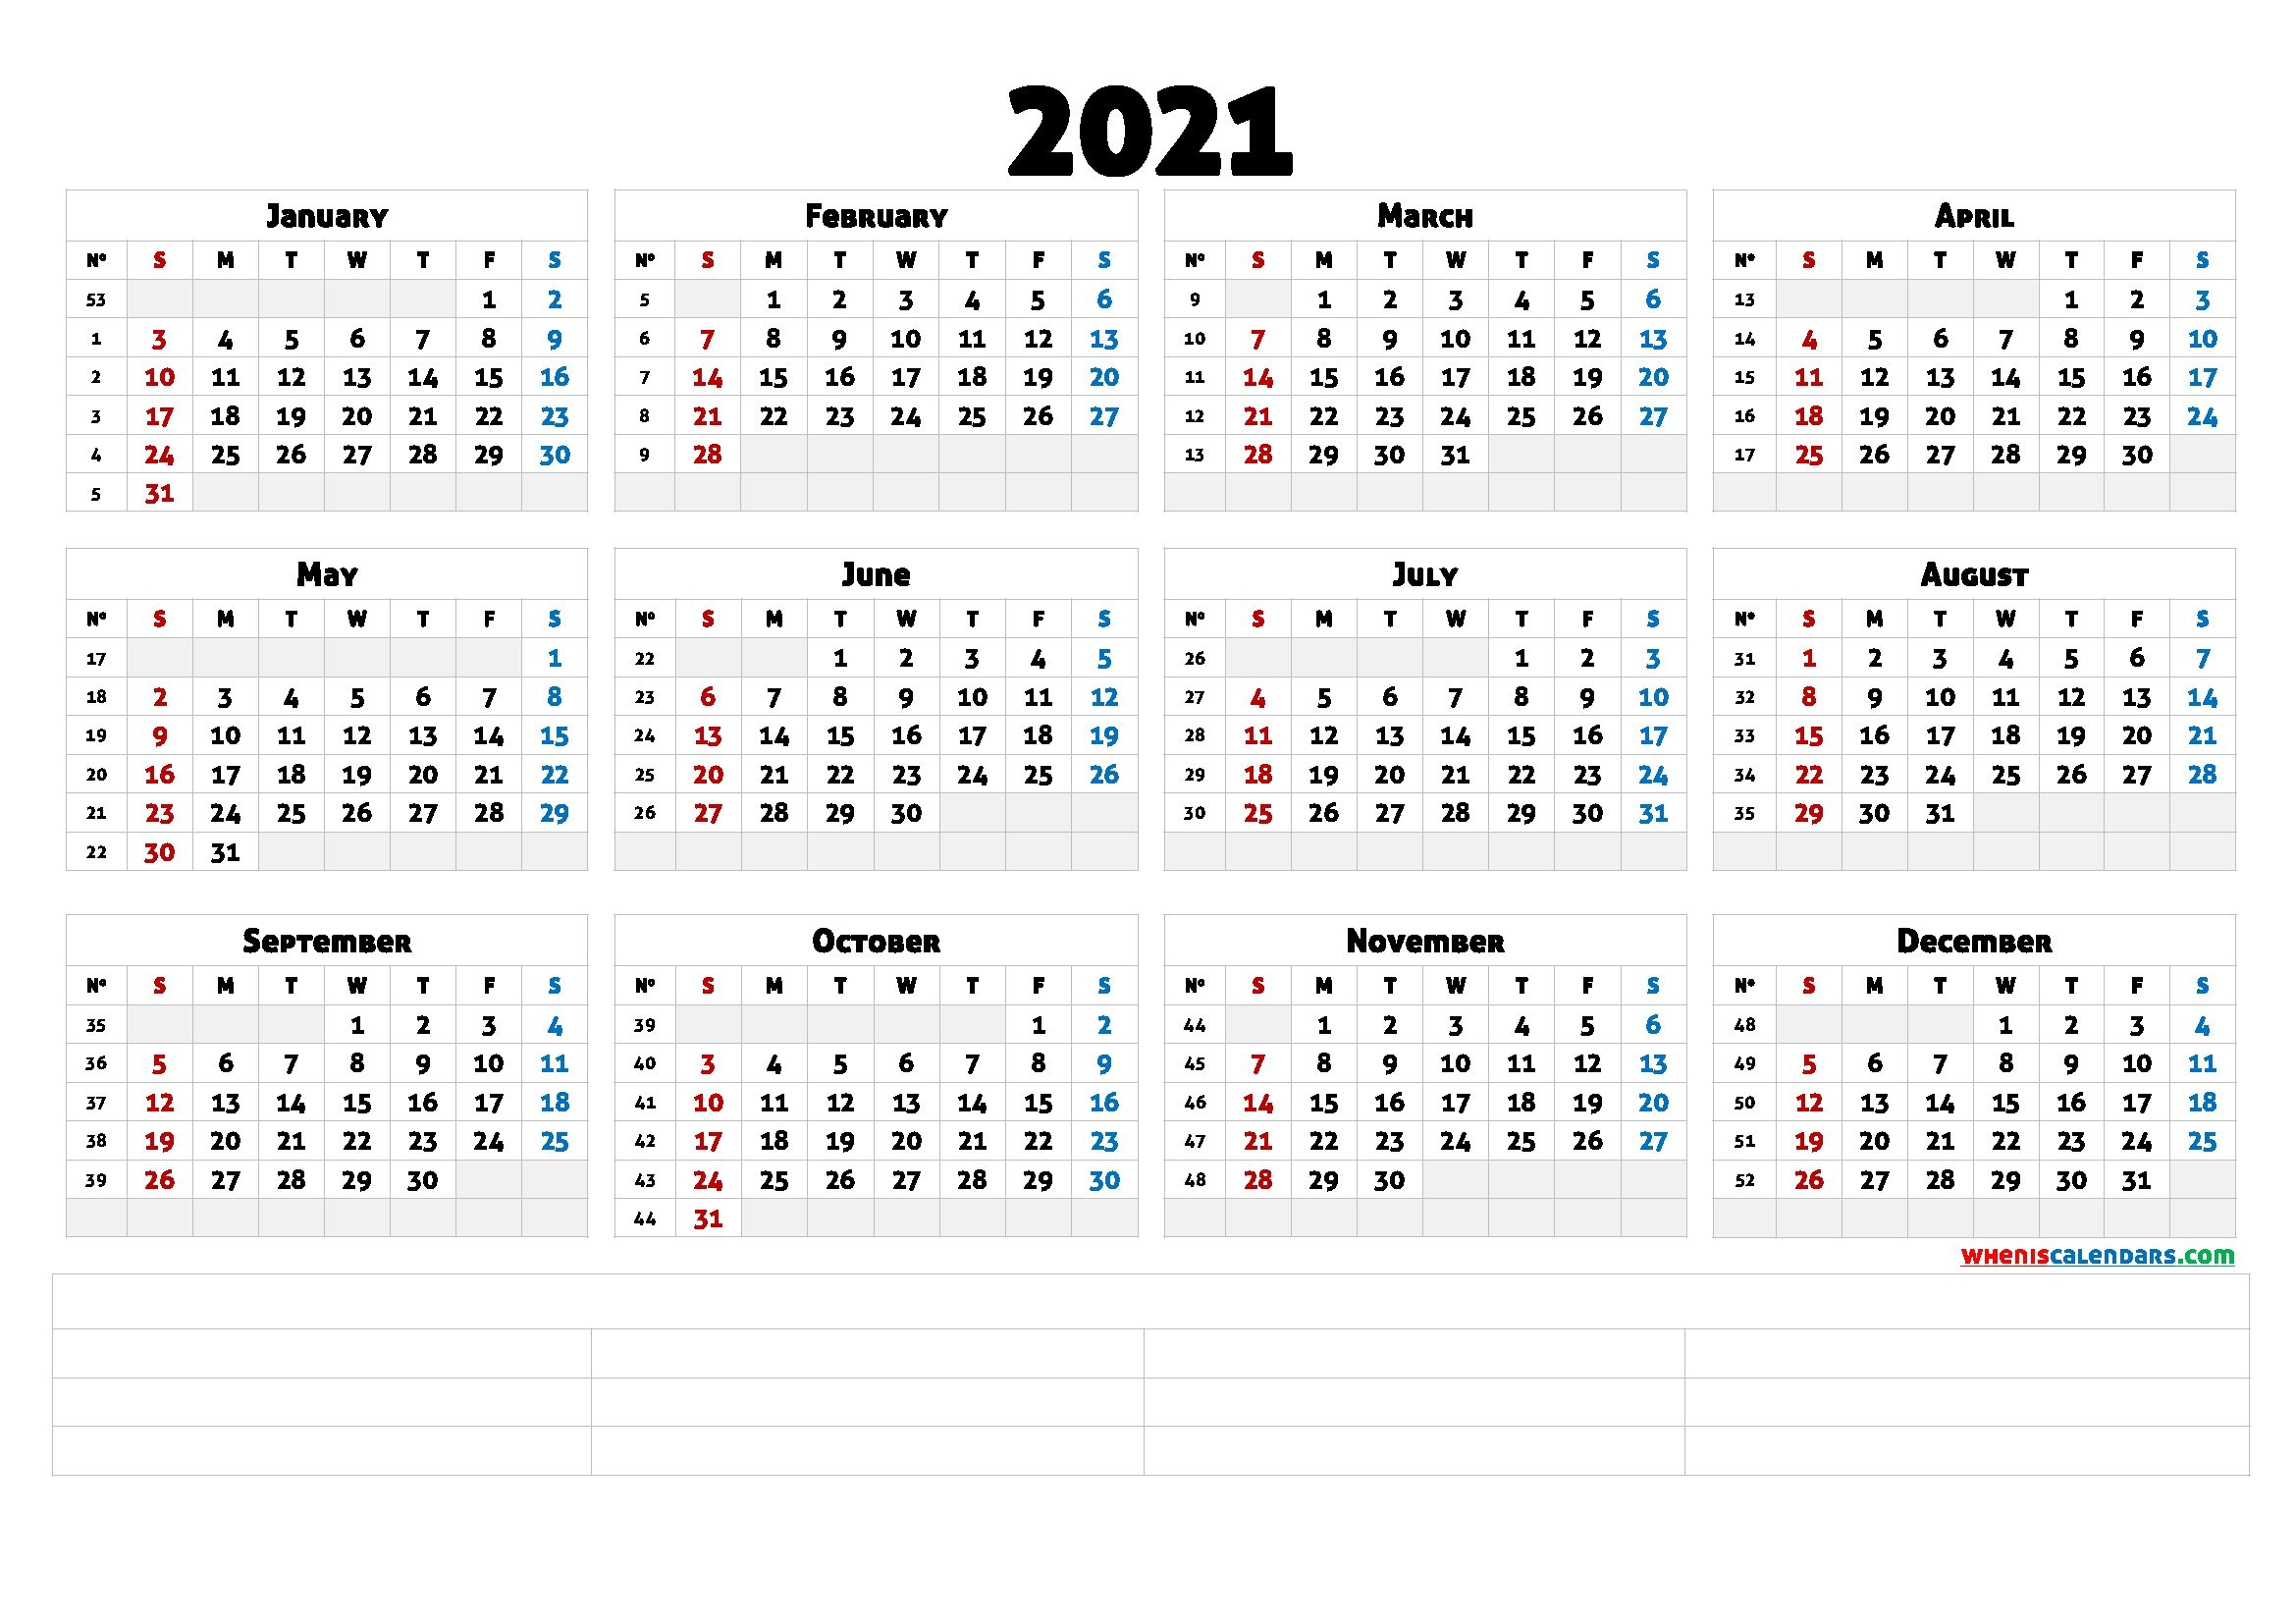 2021 Free Yearly Calendar Template Word (6 Templates)